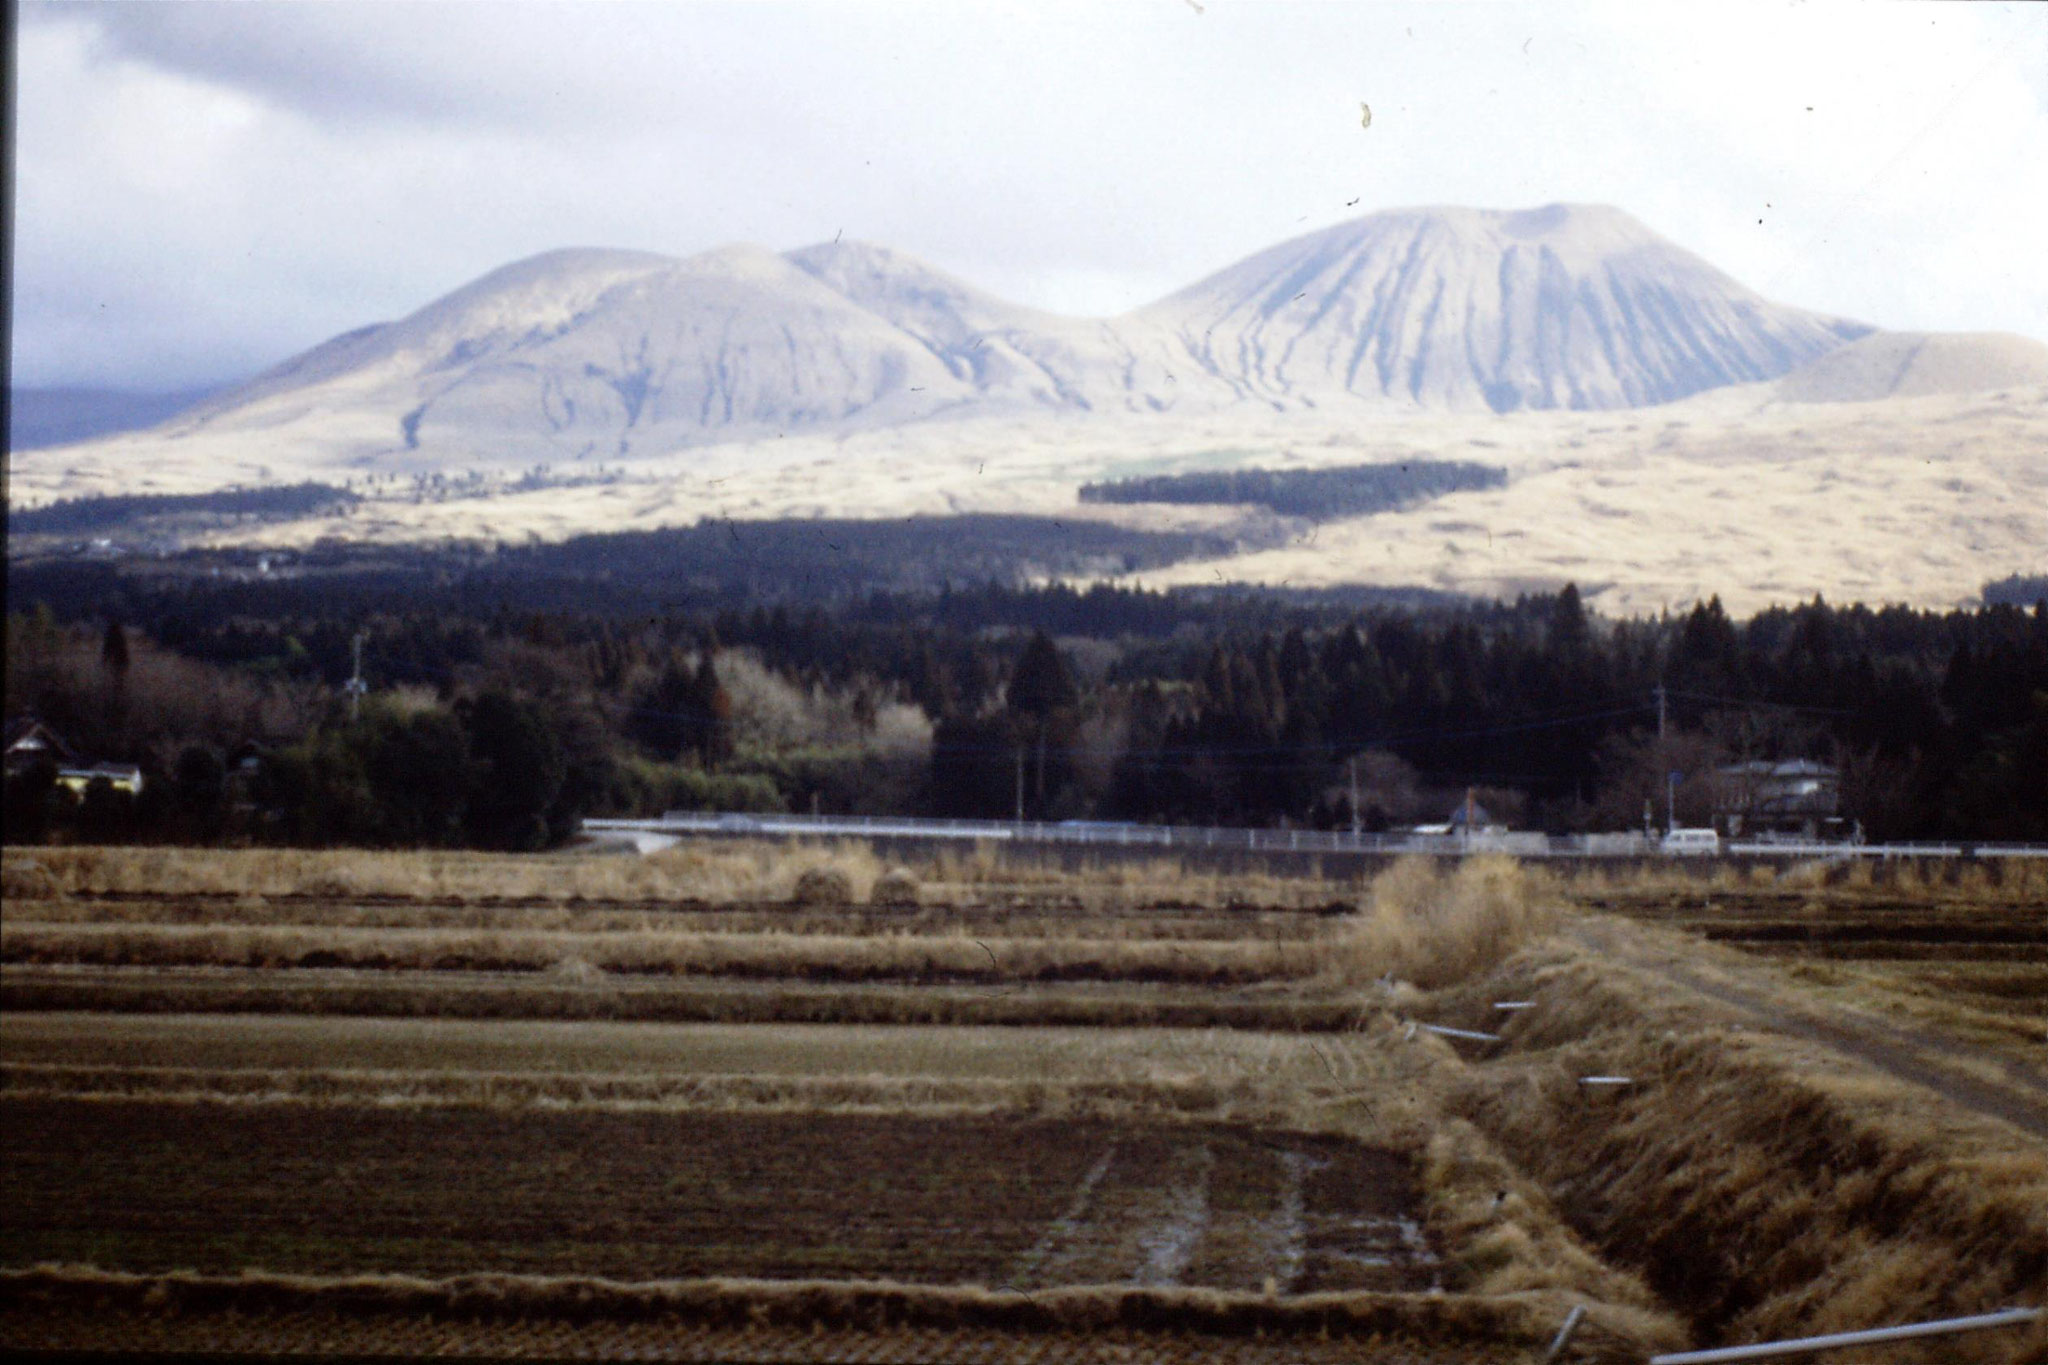 21/1/1989: 37: Mt Aso from train at Komezuka